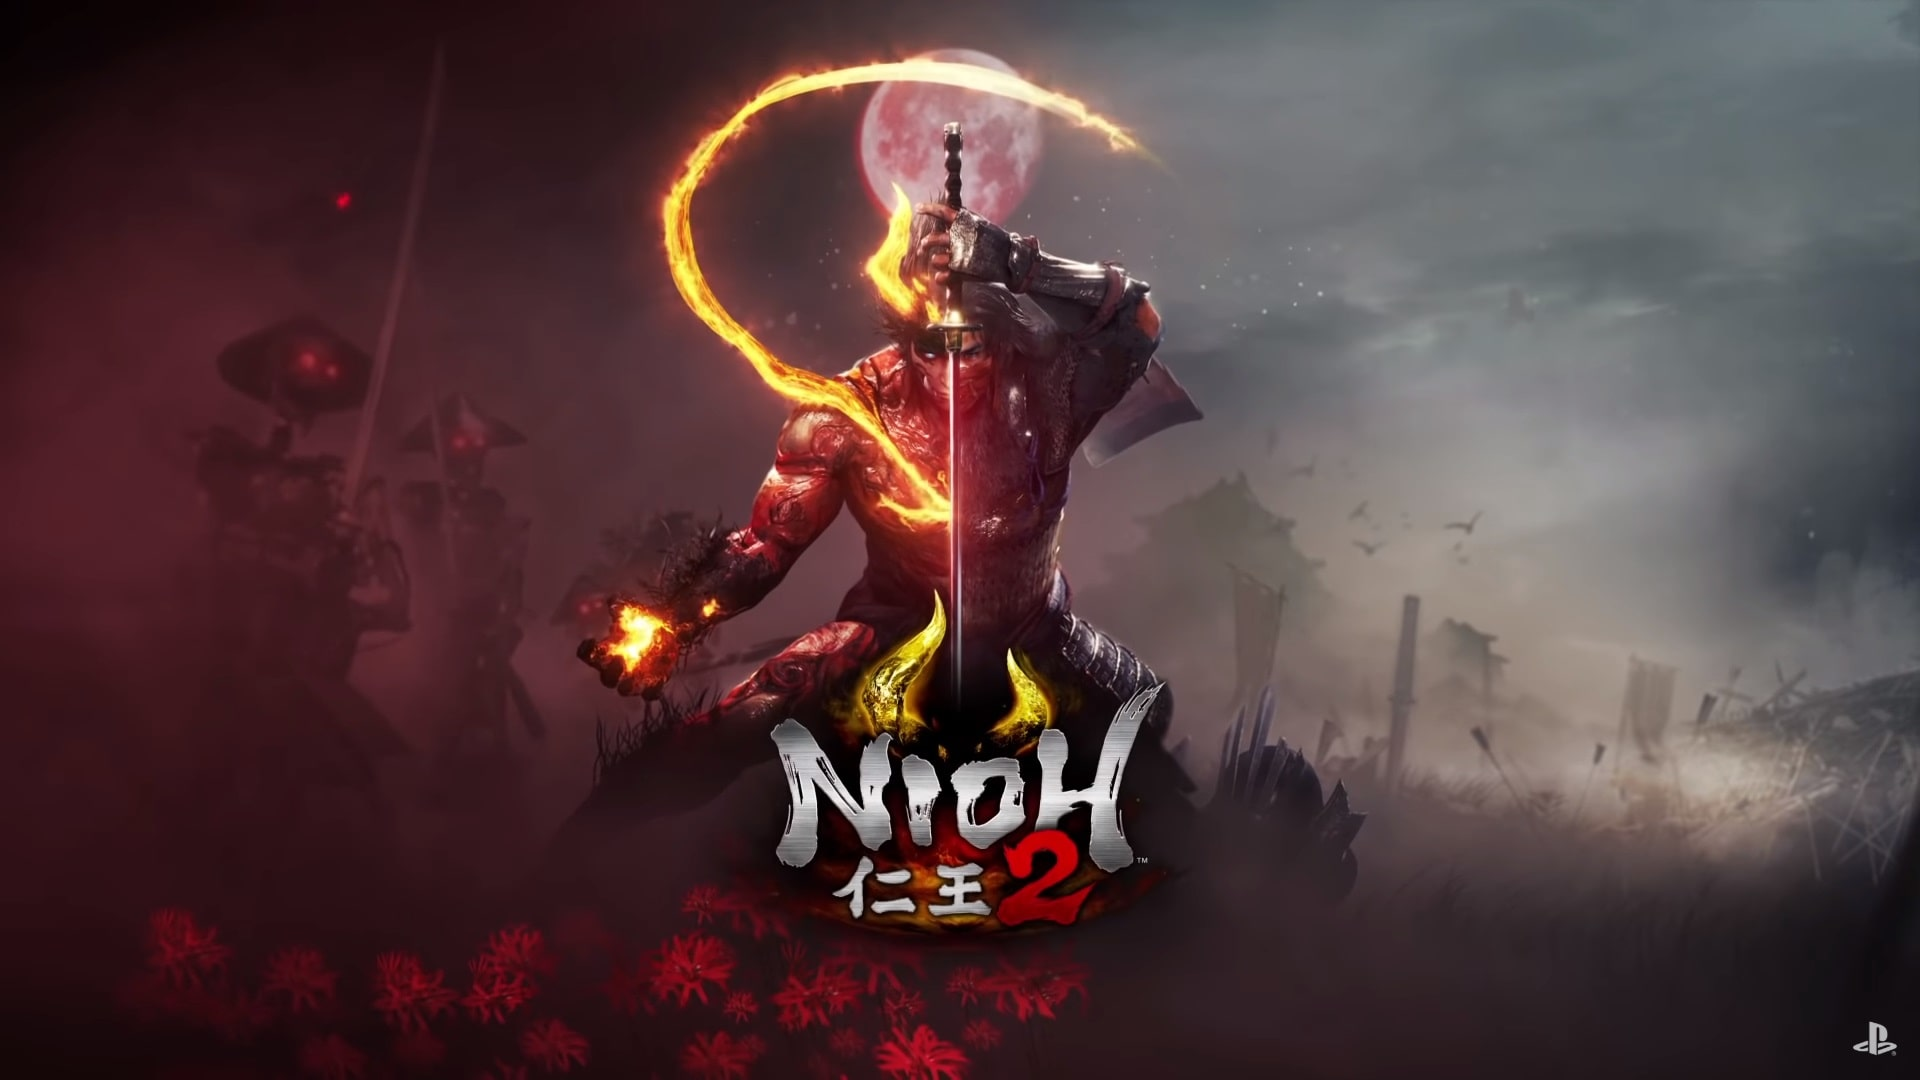 nioh 2 the complete edition 7 min - سی دی کی اورجینال Nioh 2 – The Complete Edition